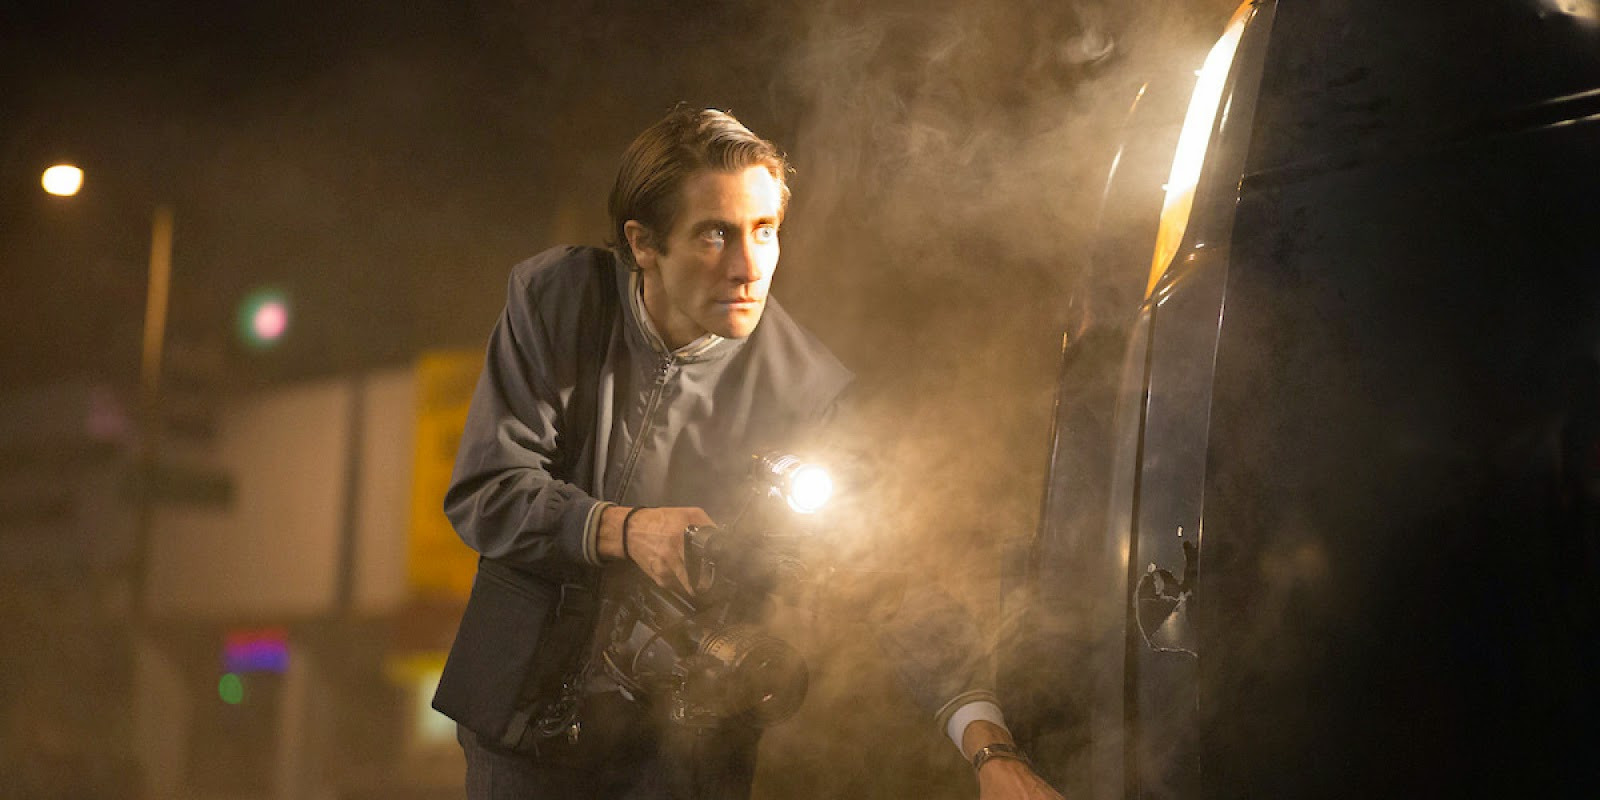 Nightcrawler:Jake Gyllenhaal | A Constantly Racing Mind